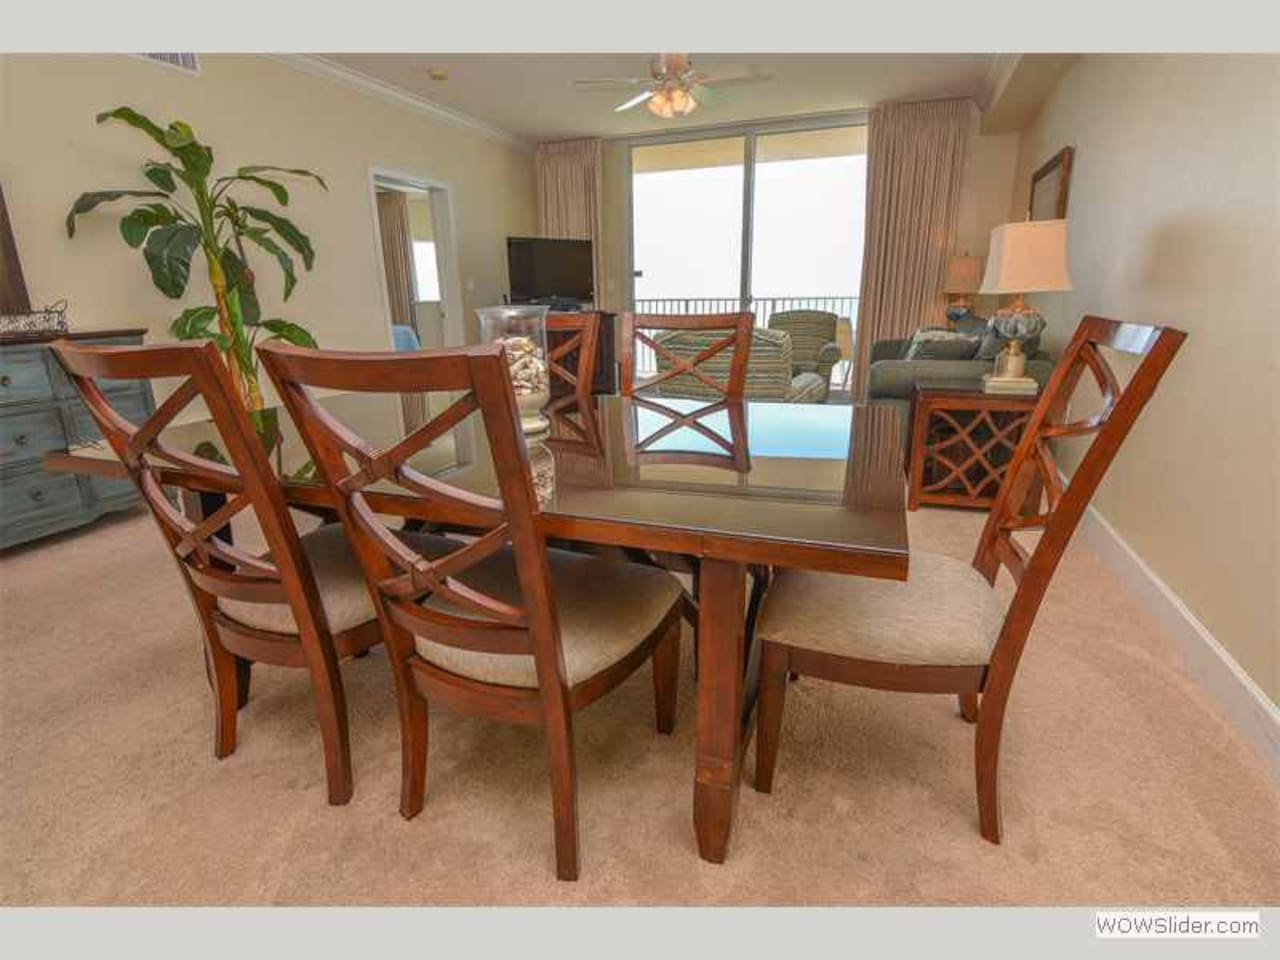 The missing piece tampa fl - Tw1005 Tidewater Is The Missing Piece Of Your Perfect Beach Get Away Condominiums For Rent In Panama City Beach Florida United States